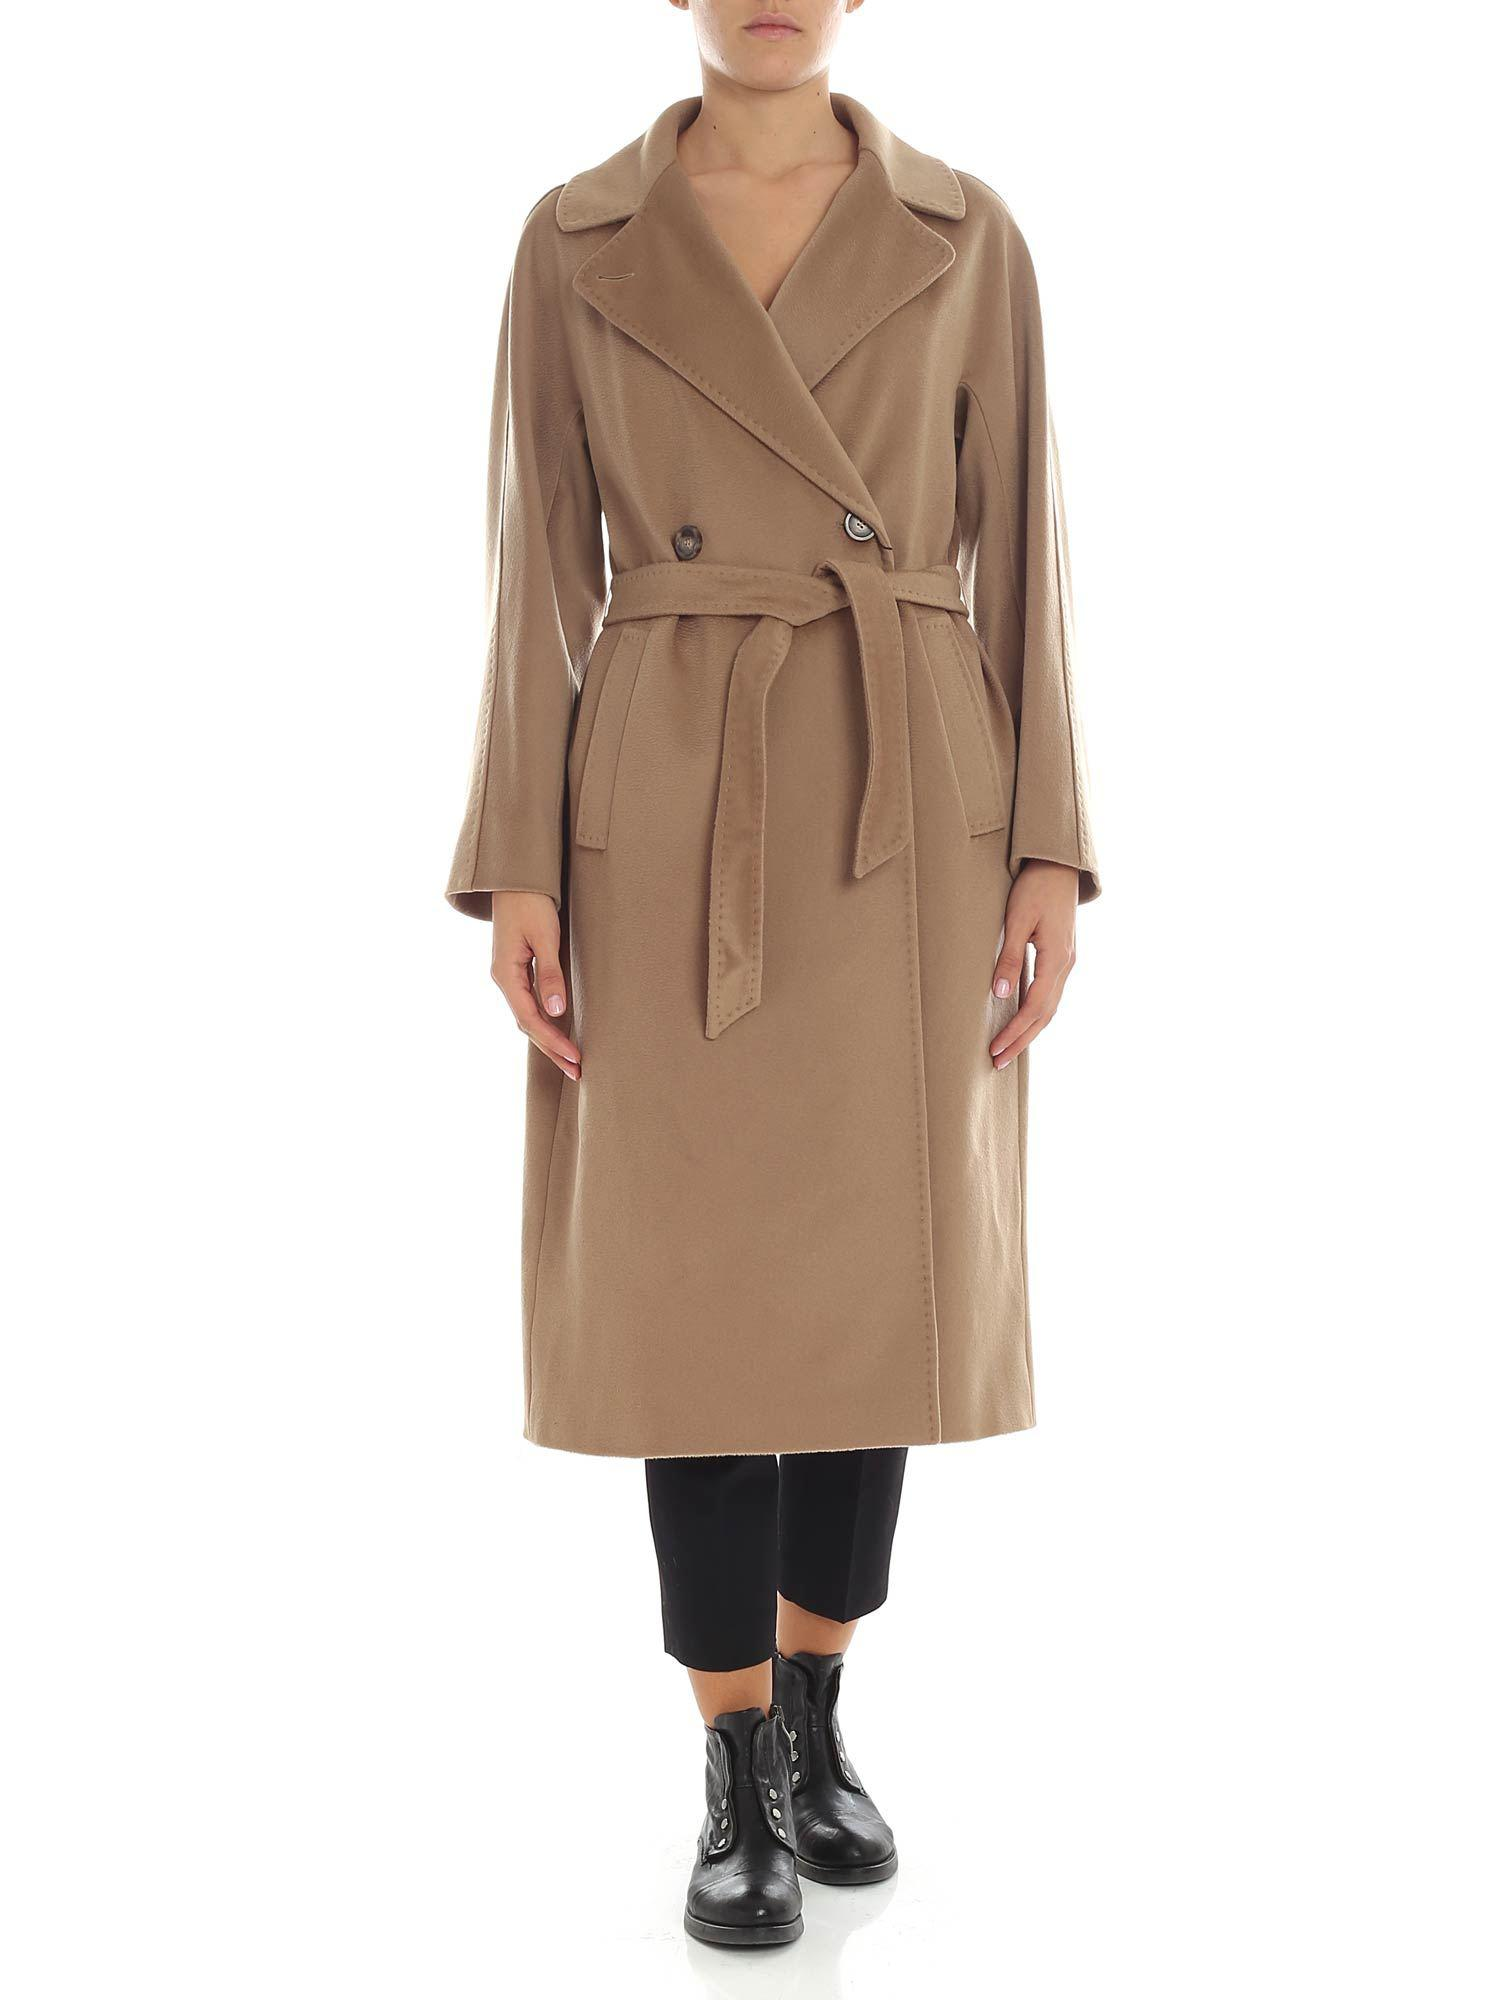 5751c198d1062 Lyst - Weekend by Maxmara Camel-colored